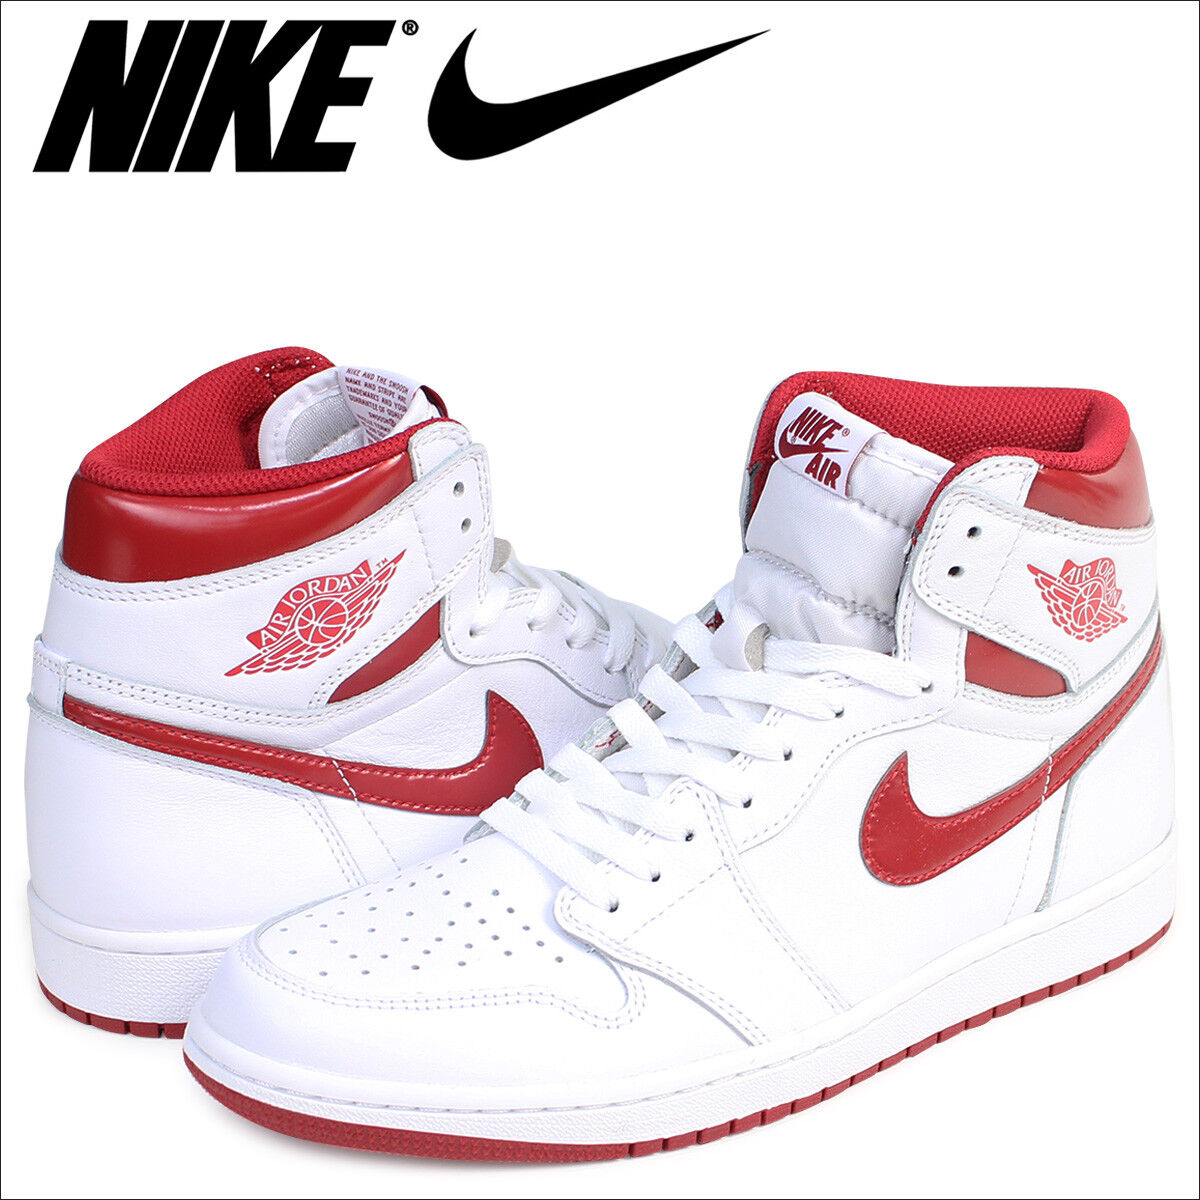 Nike Air Jordan 1 Retro High OG White Metallic Varsity Red 555088 103 Mens sz 13